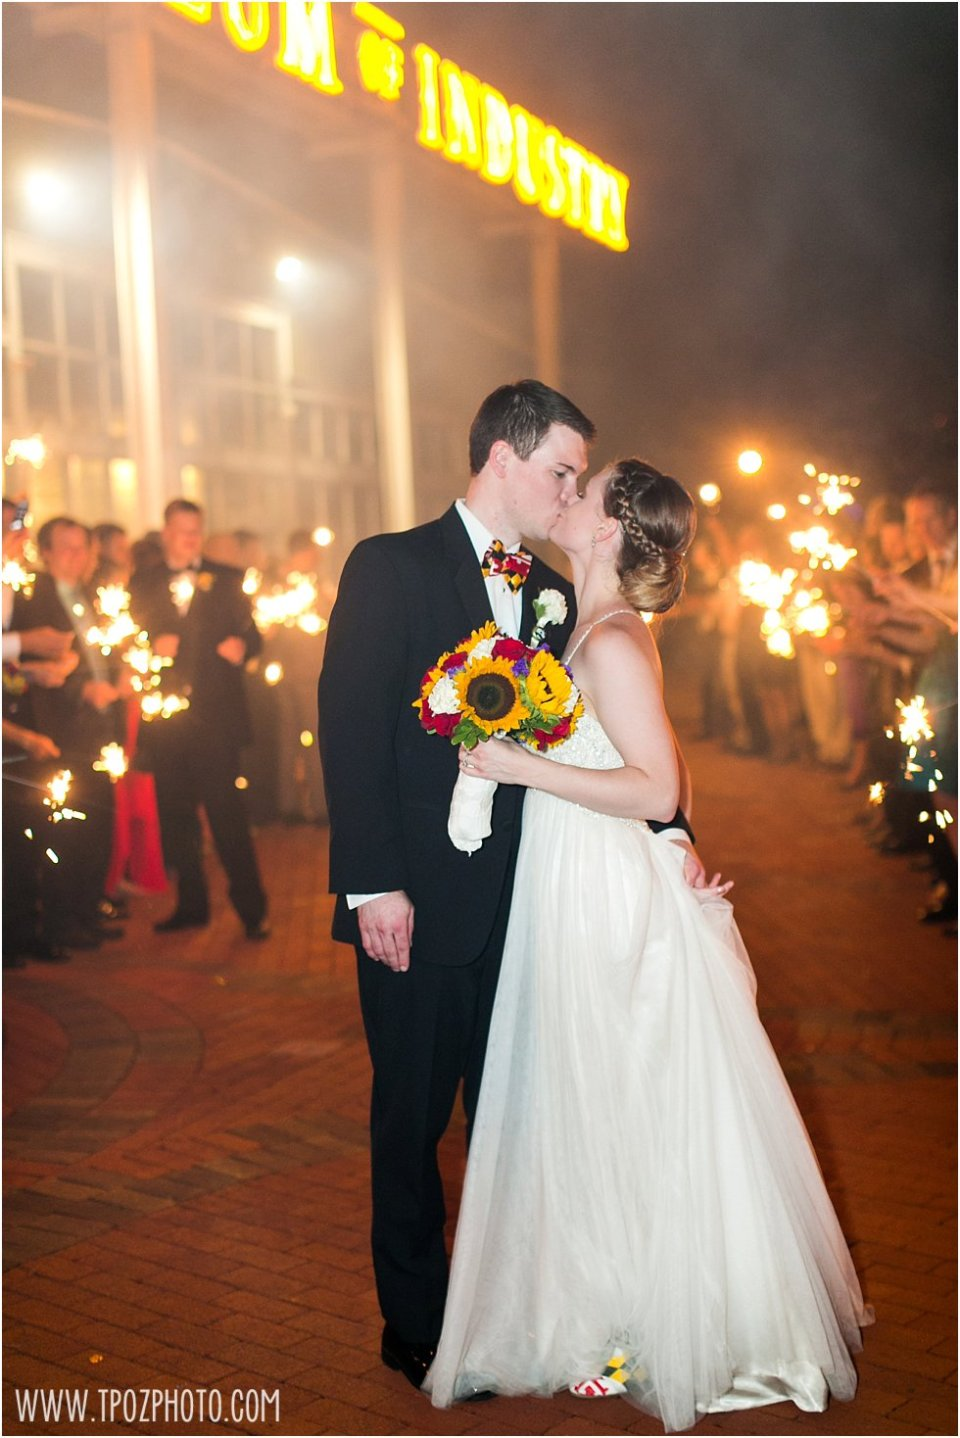 Baltimore Museum of Industry wedding photos •  tPoz Photography •  www.tpozphotoblog.com